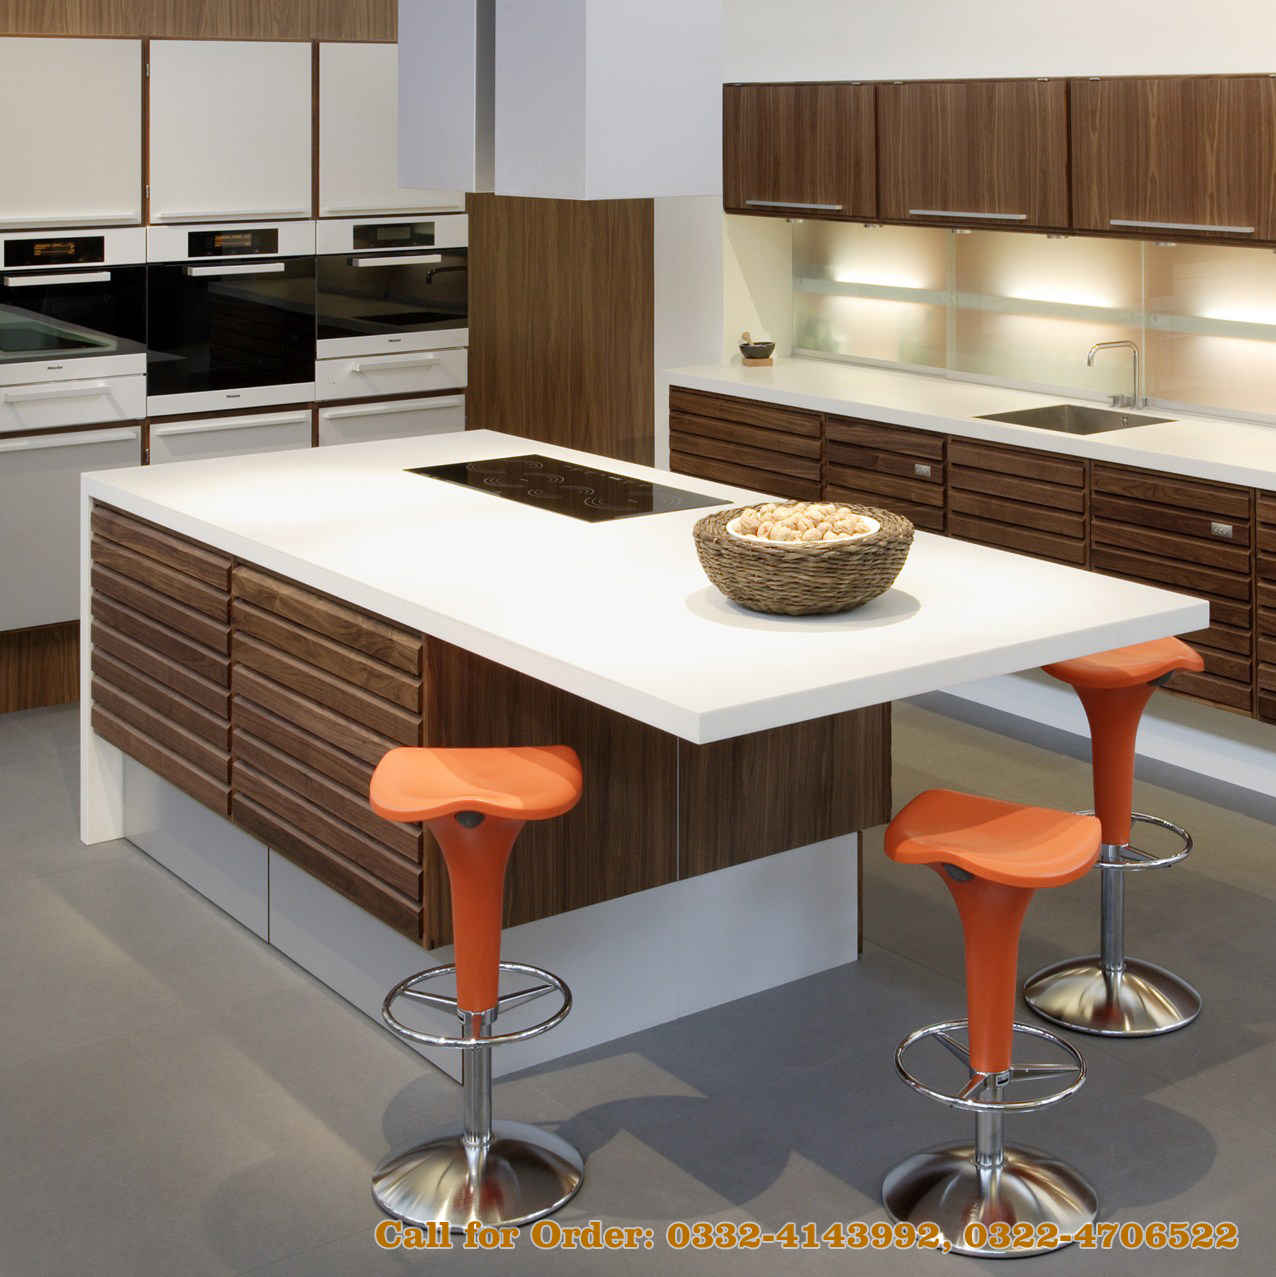 Furniture Design In Lahore quality corian furniture work in lahore | kitchens & wardrobes